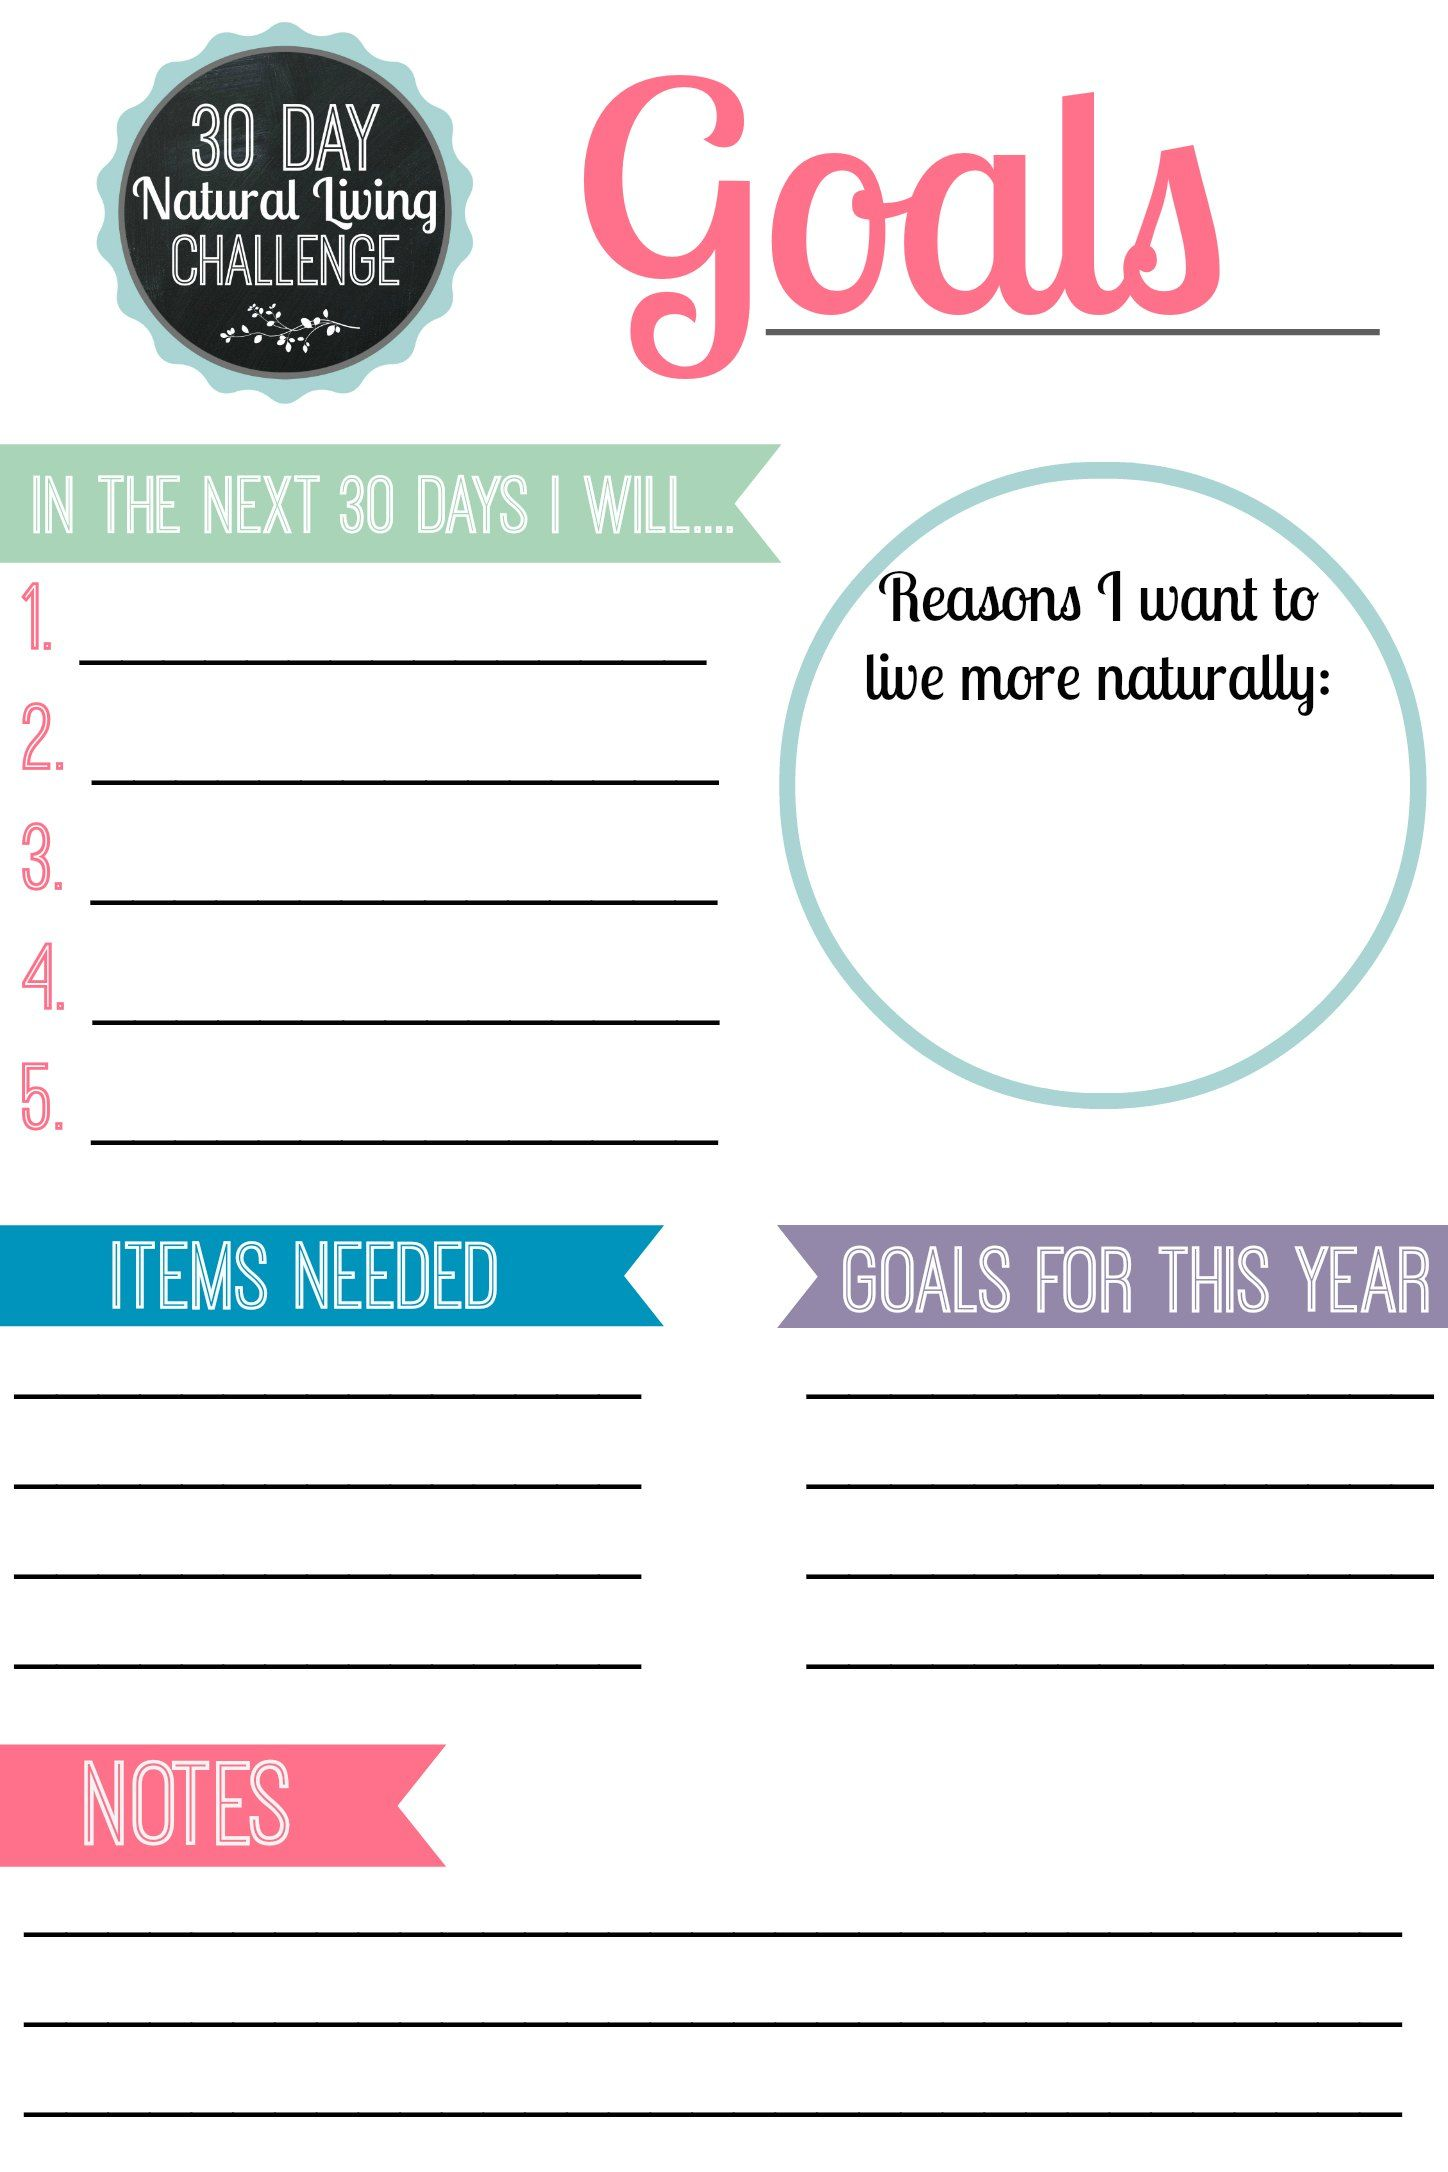 30 Day Natural Living Challenge Setting Goals